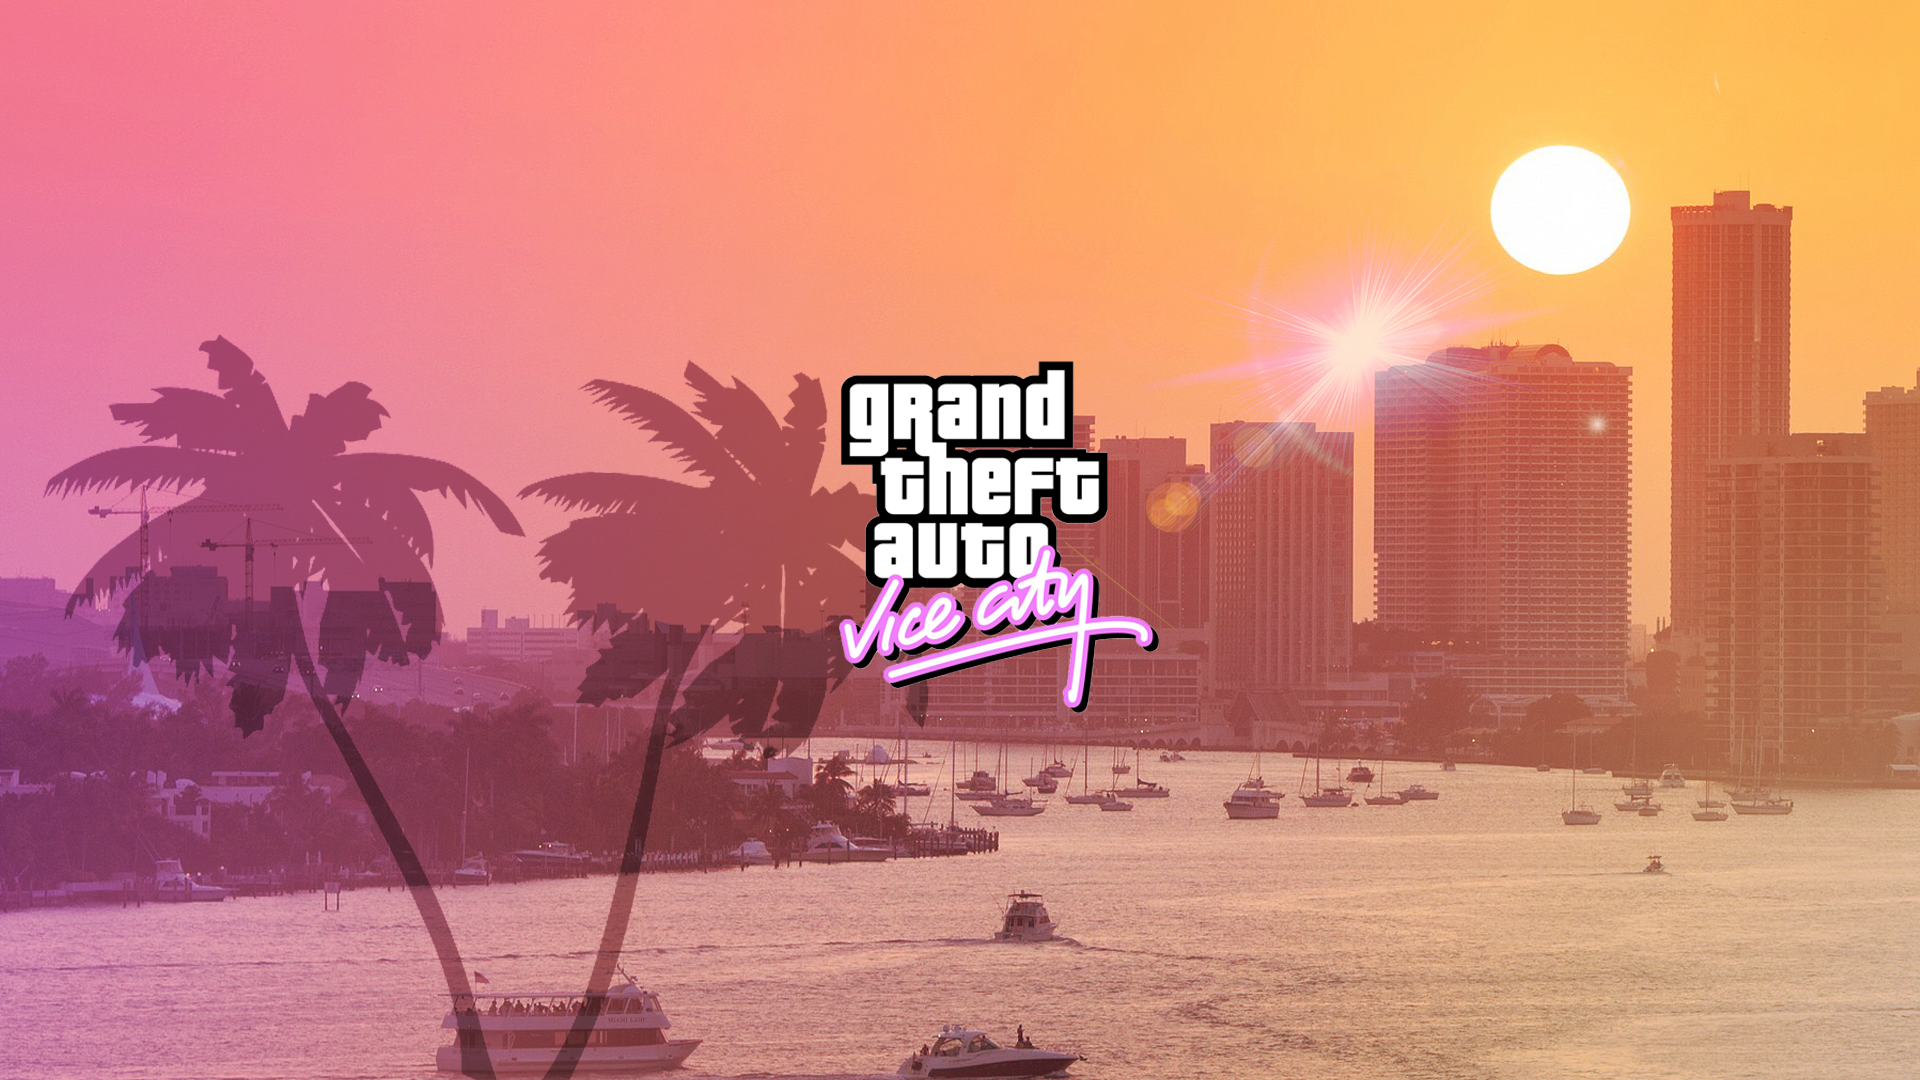 Gta Vice City Full Hd Pc Wallpaper Grand Theft Auto Grand Theft Auto Series Gta